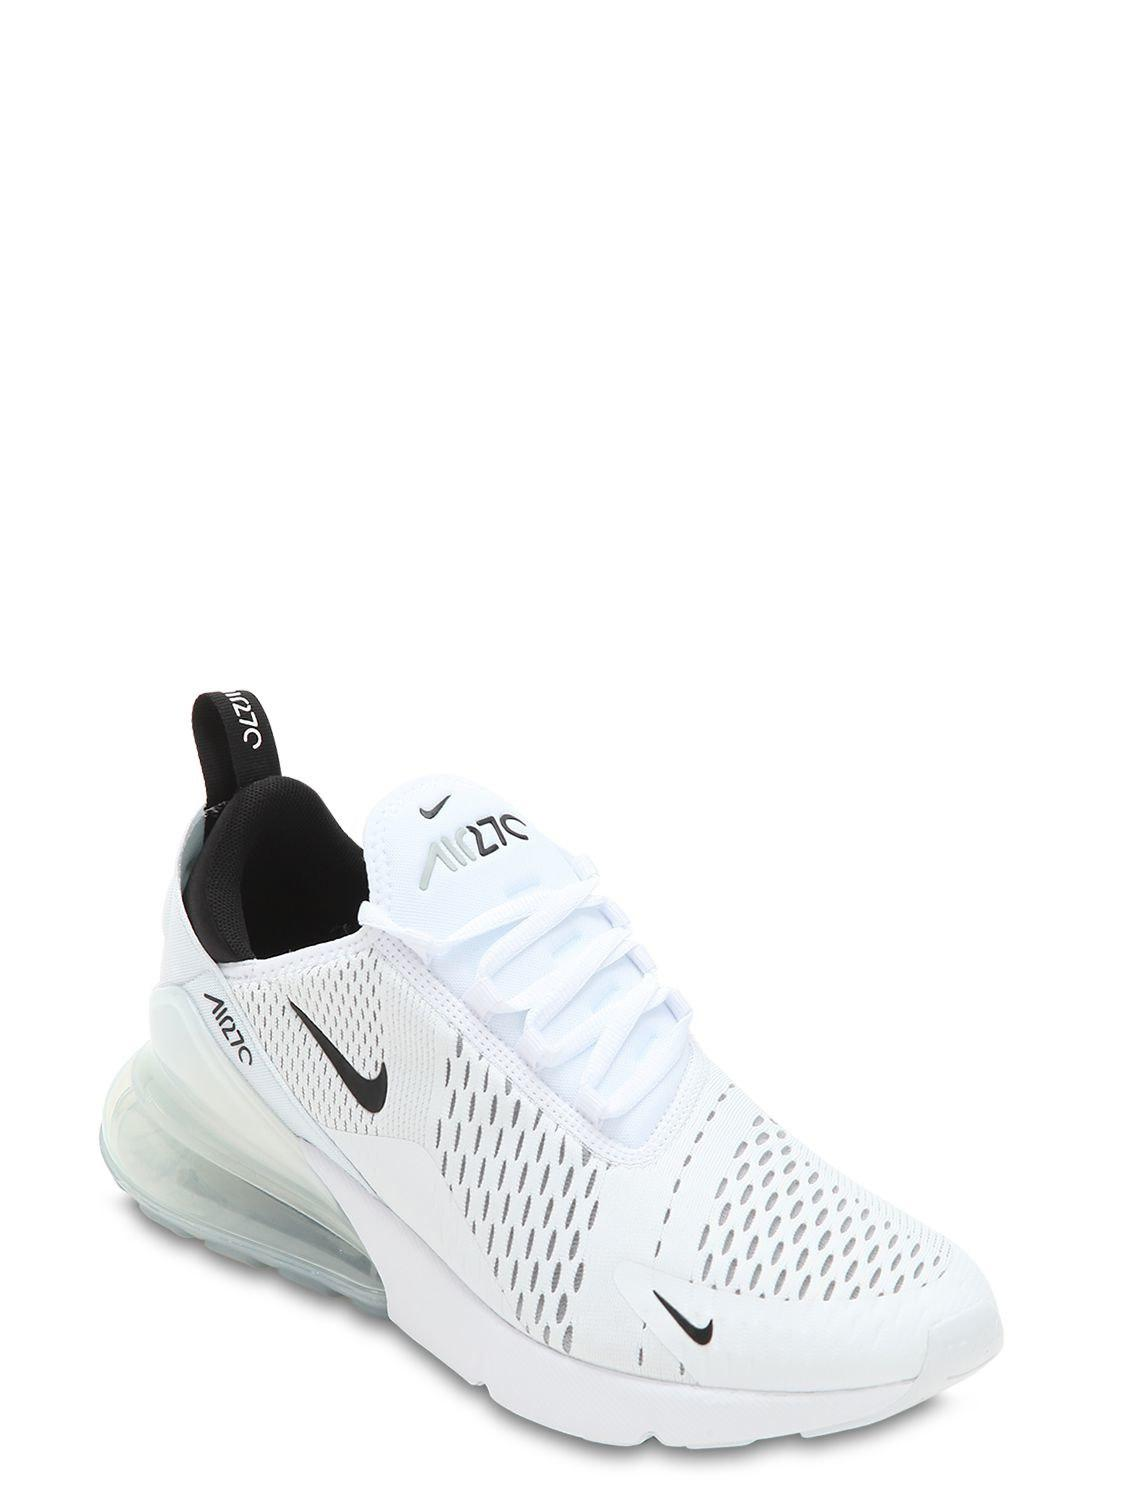 51c37ce5e1c50 Lyst - Nike Air Max 270 Sneakers in White for Men - Save 22%